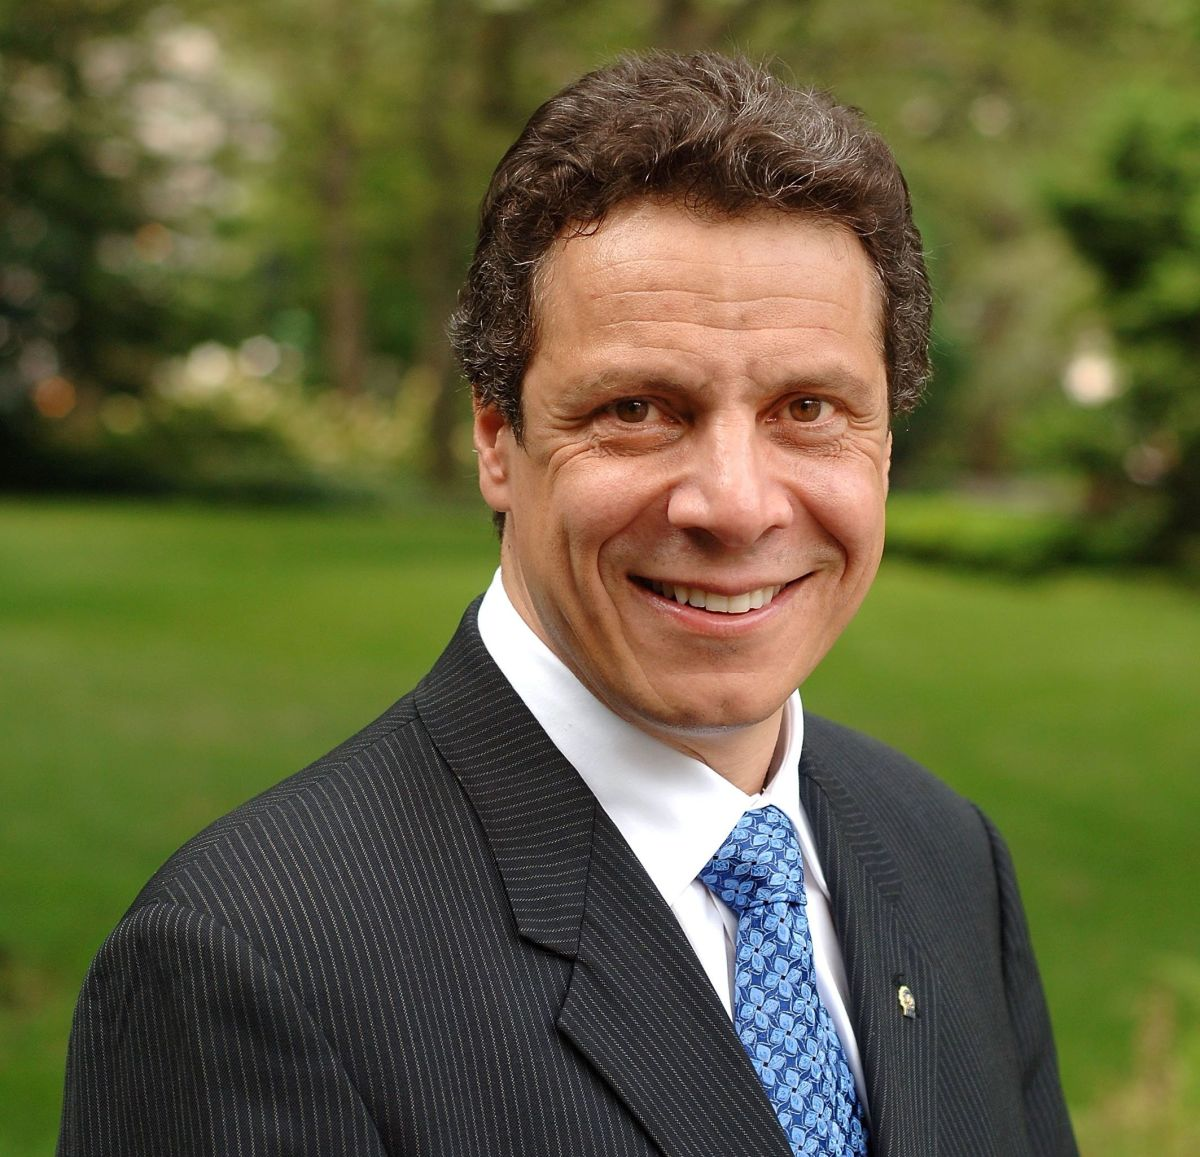 New York Mayor Governor Andrew Cuomo Discredits God For Decline in CovidNumbers